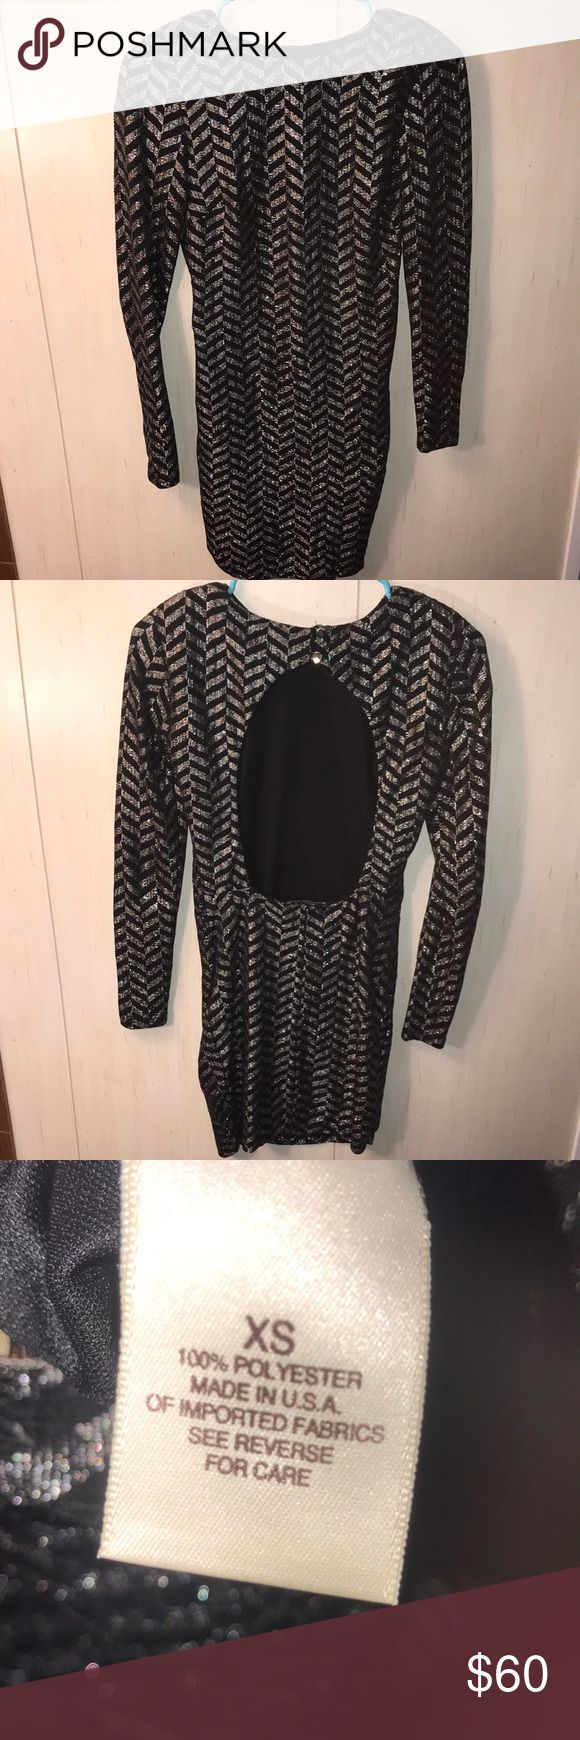 Black/silver Bodycon Dress w/ open back Arden B black and silver sparkly dress Body con Shoulder pads Long sleeves Worn once, perfect condition Arden B Dresses Long Sleeve